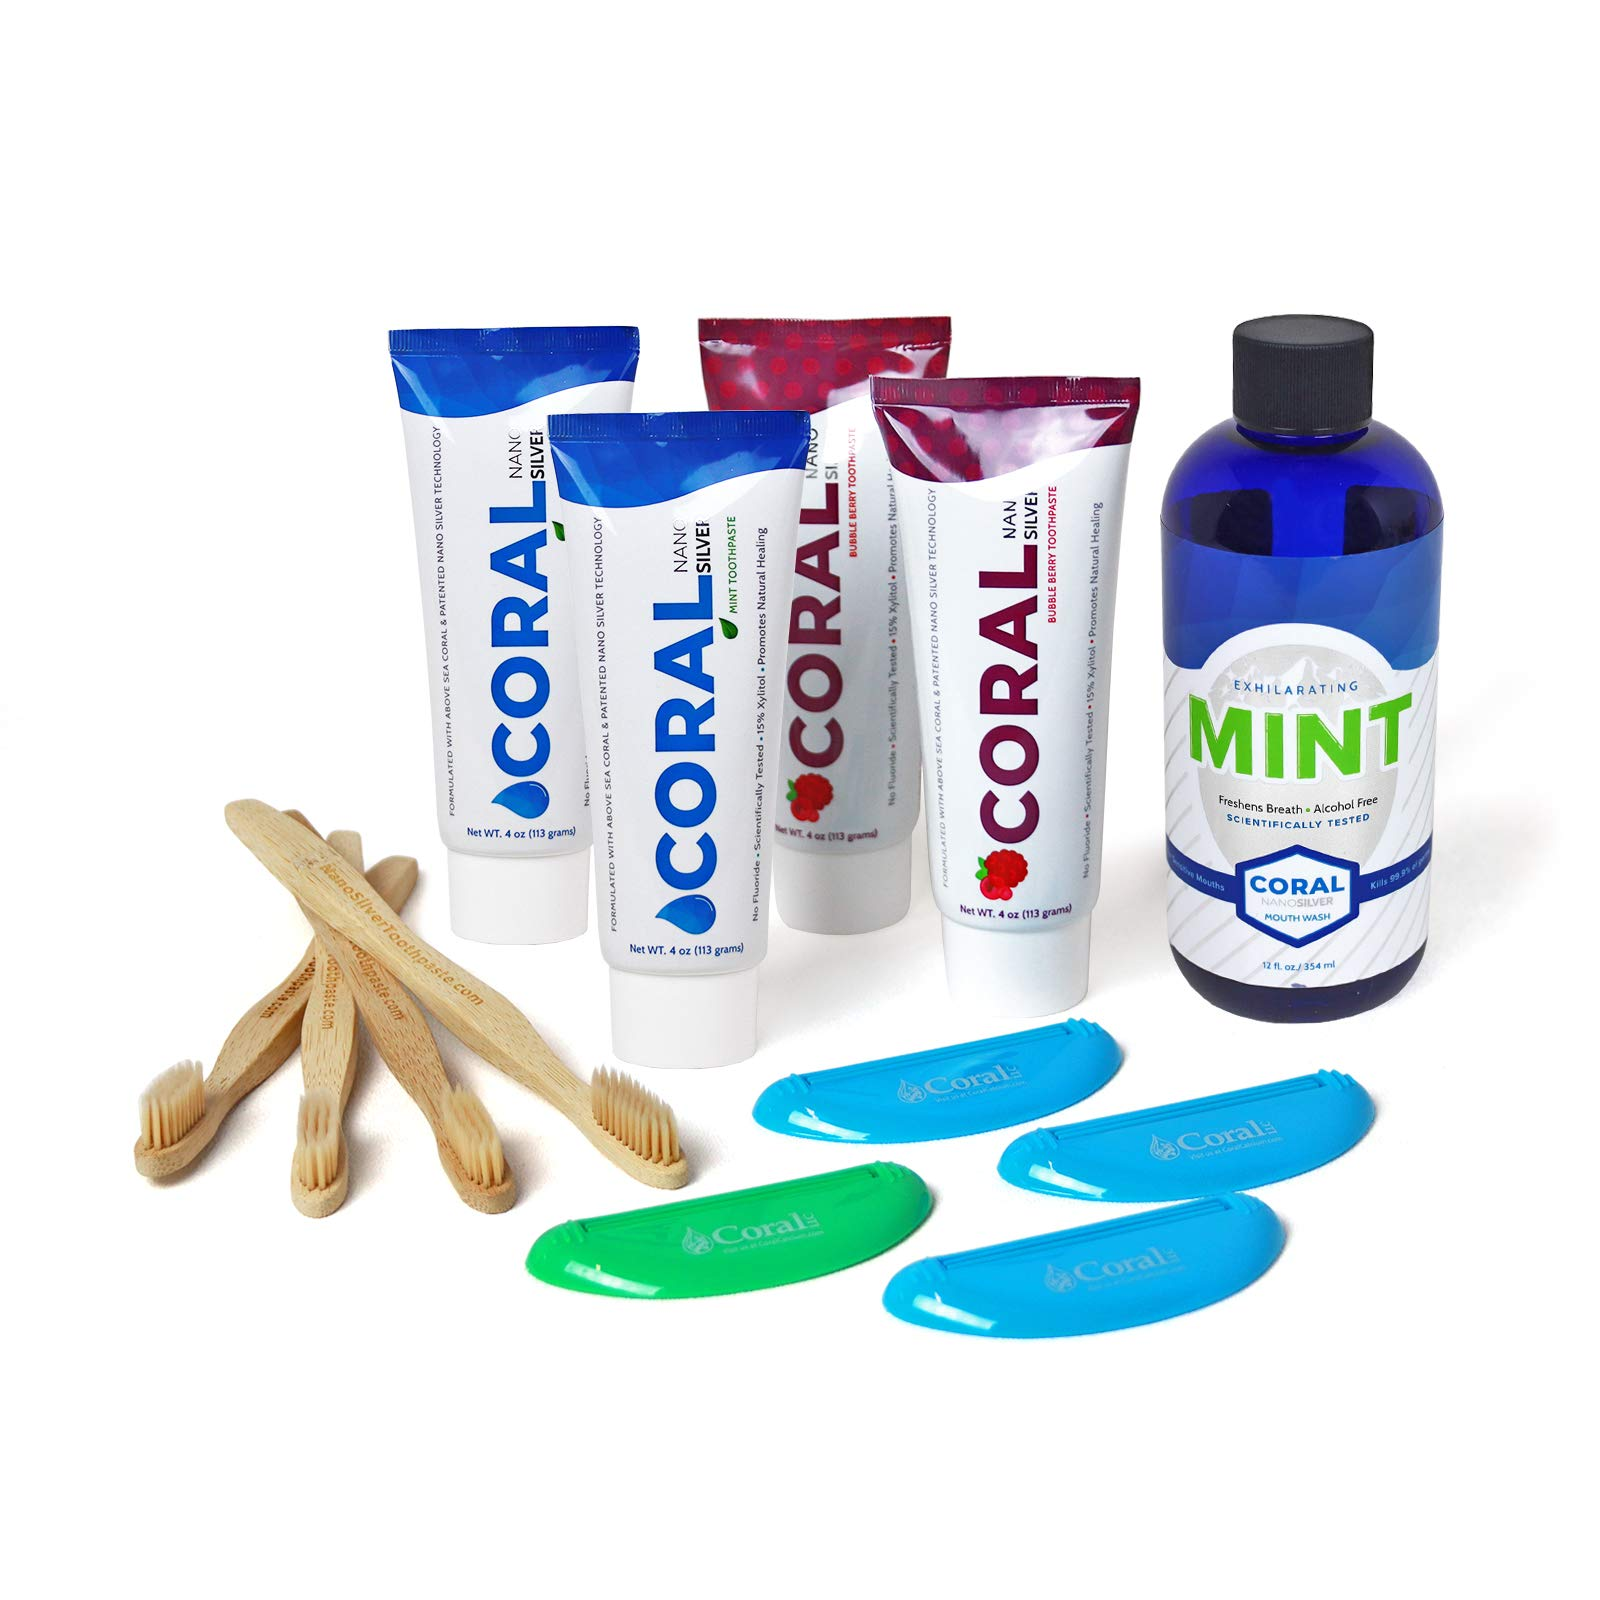 Coral White Nano Silver Toothpaste Flavor Bundle Natural Fluoride Free Teeth Whitening Toothpaste Nano Silver Mouthwash Coral Calcium Nano Silver Infused SLS Free